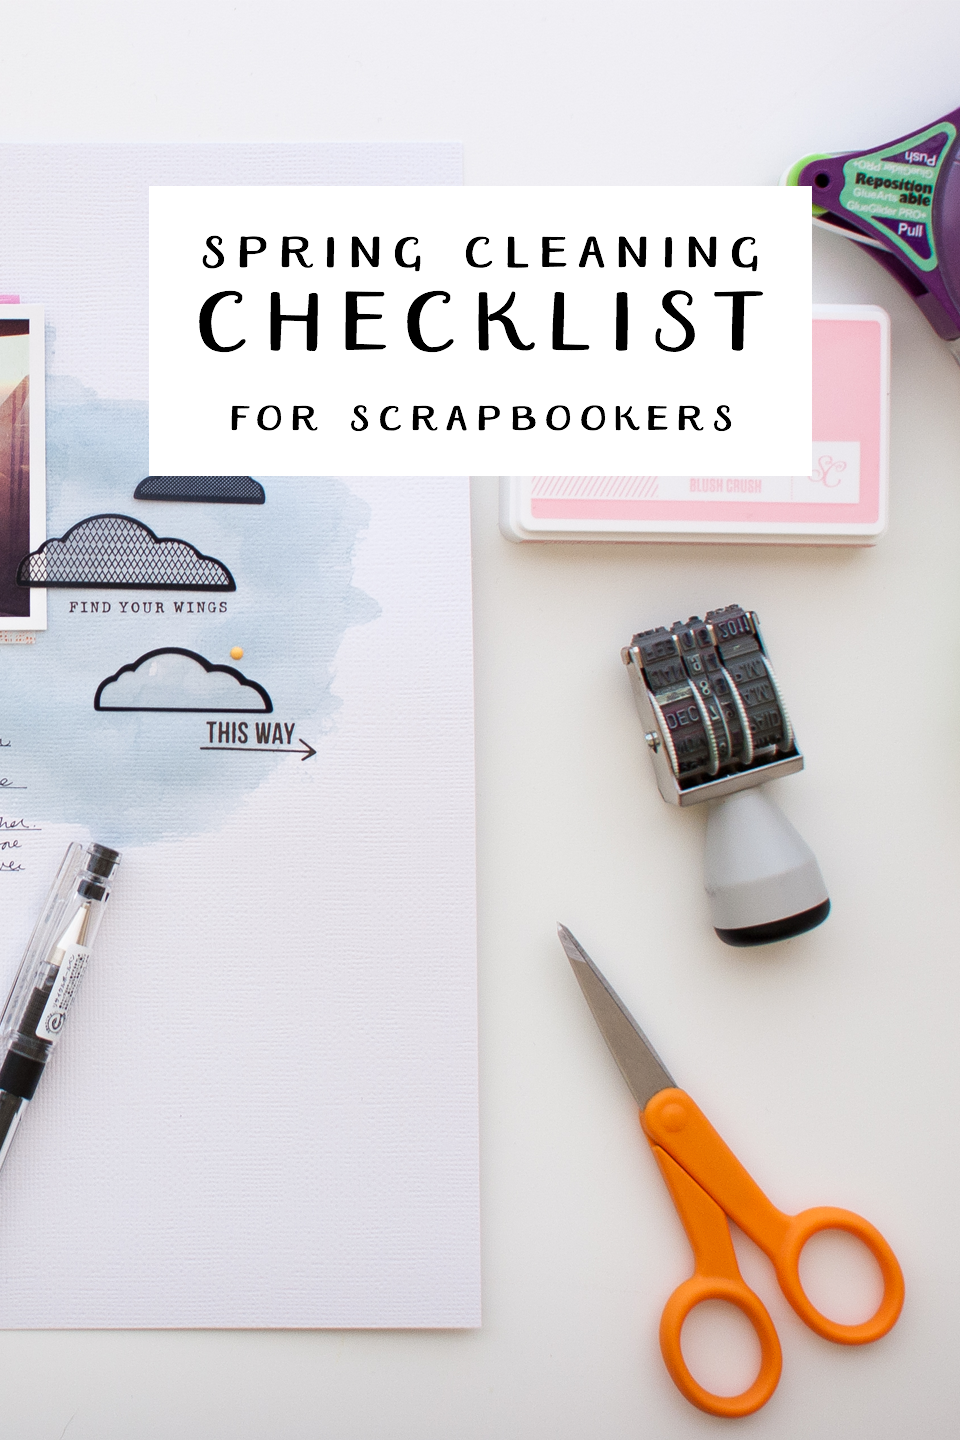 A Simple Spring Cleaning Checklist for Scrapbookers